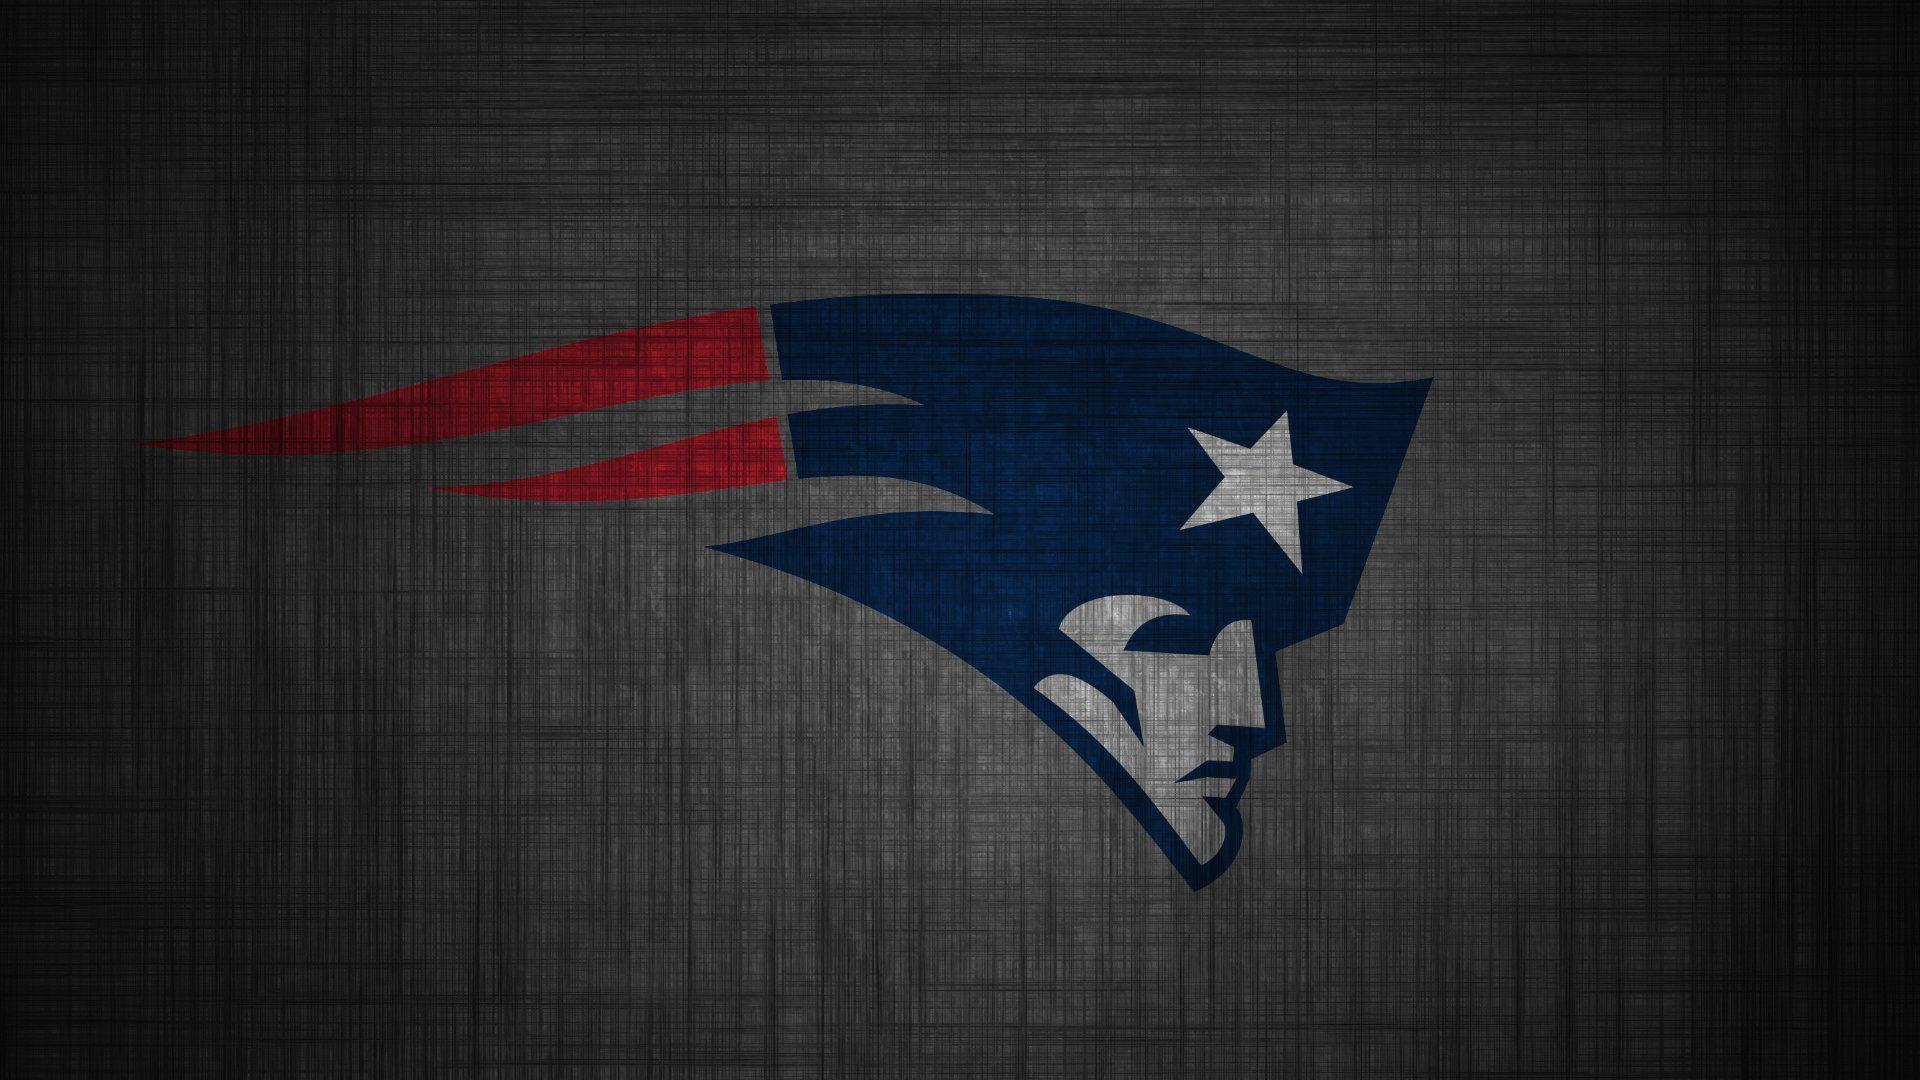 Pats Wallpapers 101 images in Collection Page 1 1920x1080